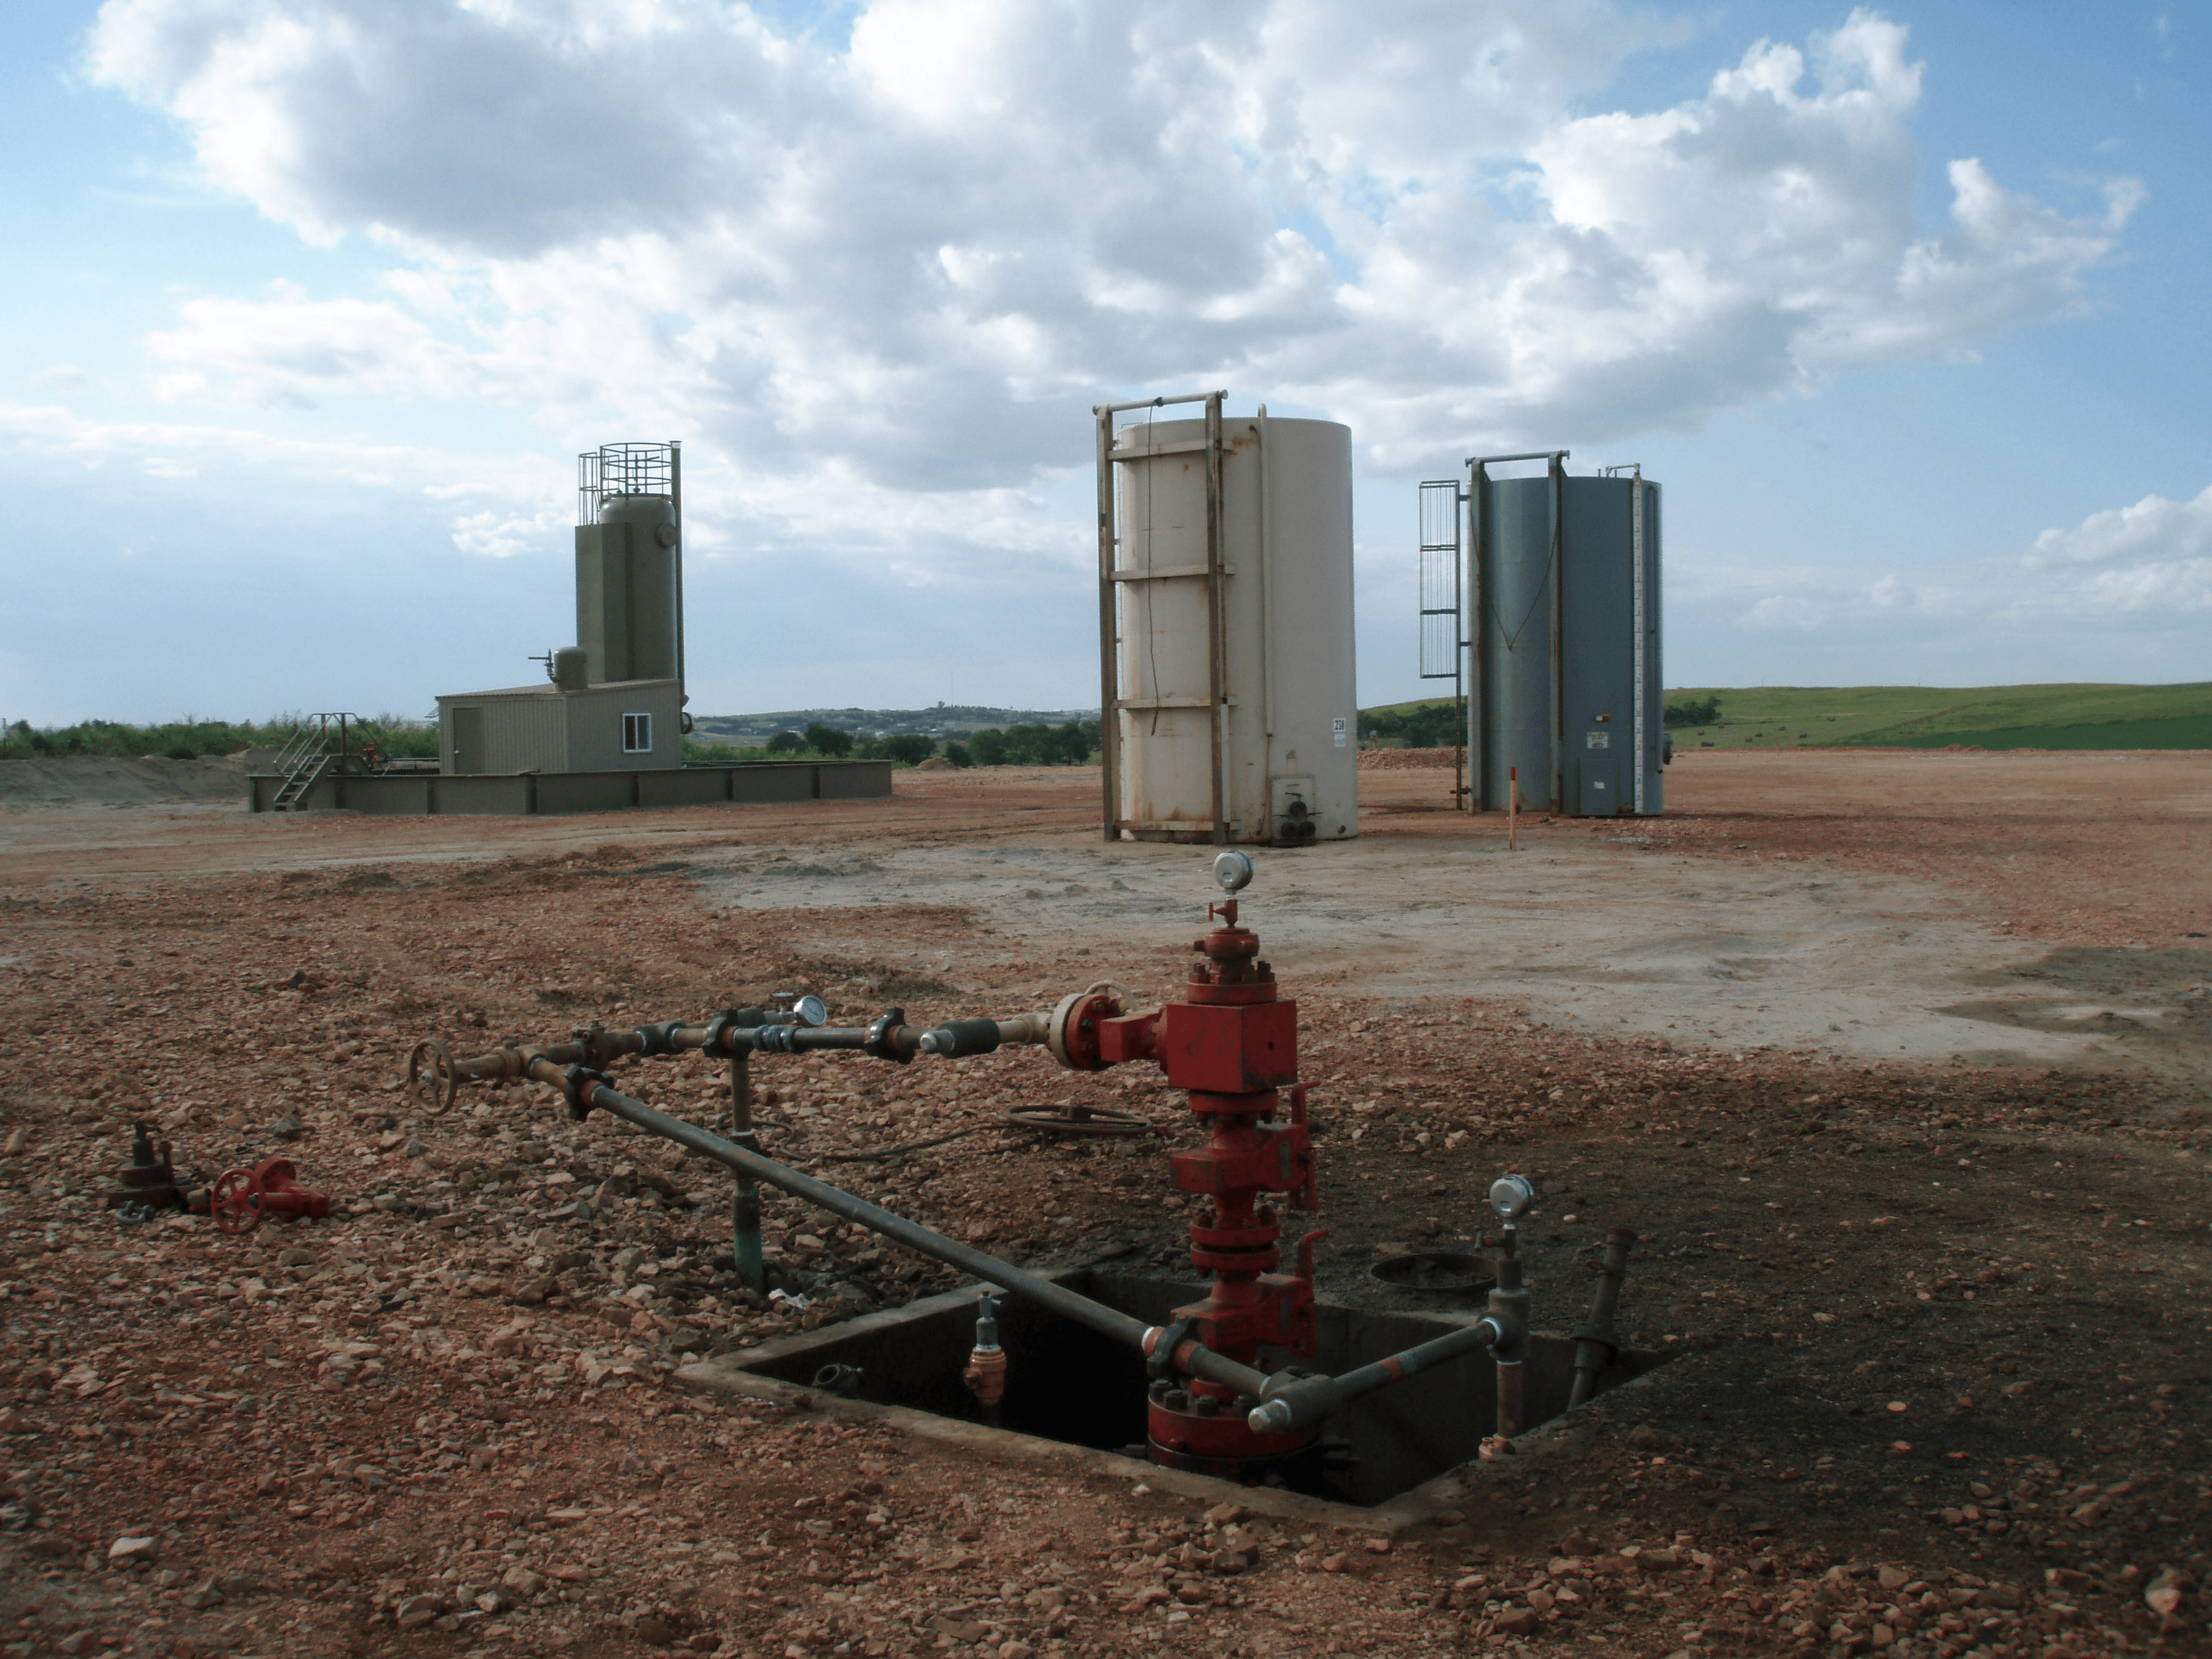 Groundwater monitoring equipment